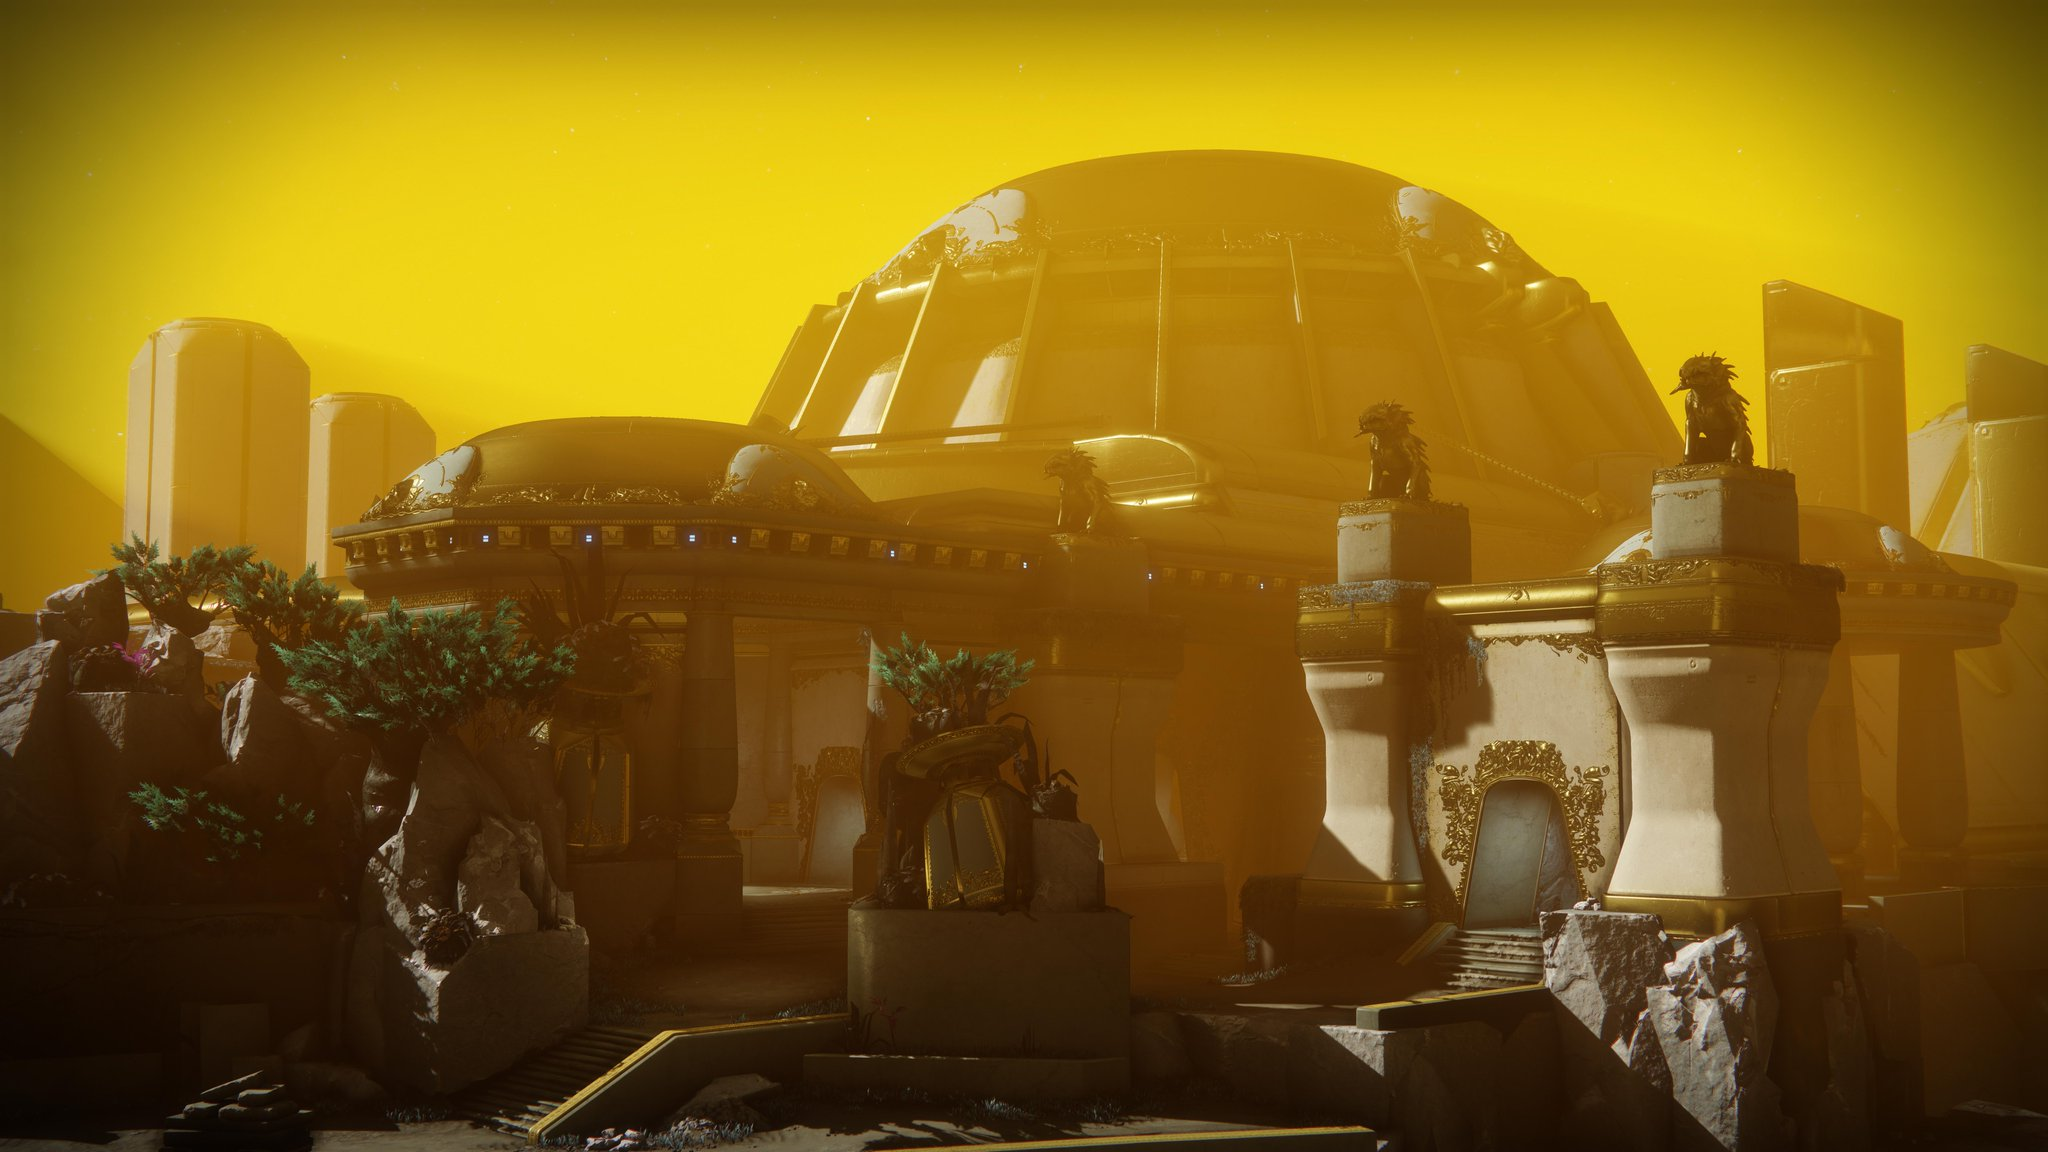 Destiny 2 Leviathan Raid Getting Optional Challenges